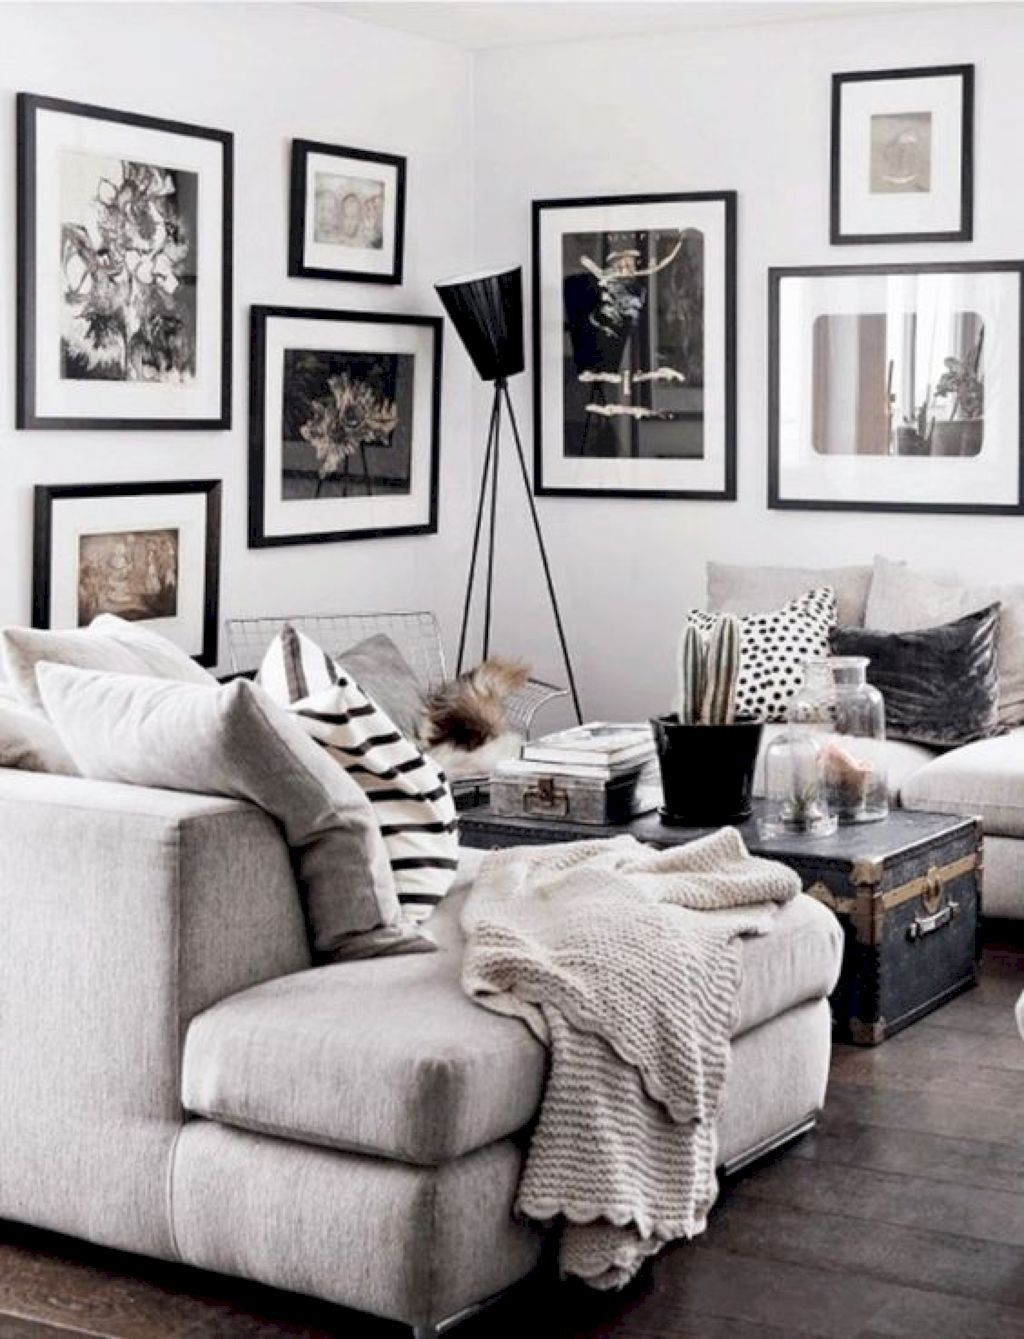 32 Comfy Living Room Design Ideas | Conversation area, Living rooms ...